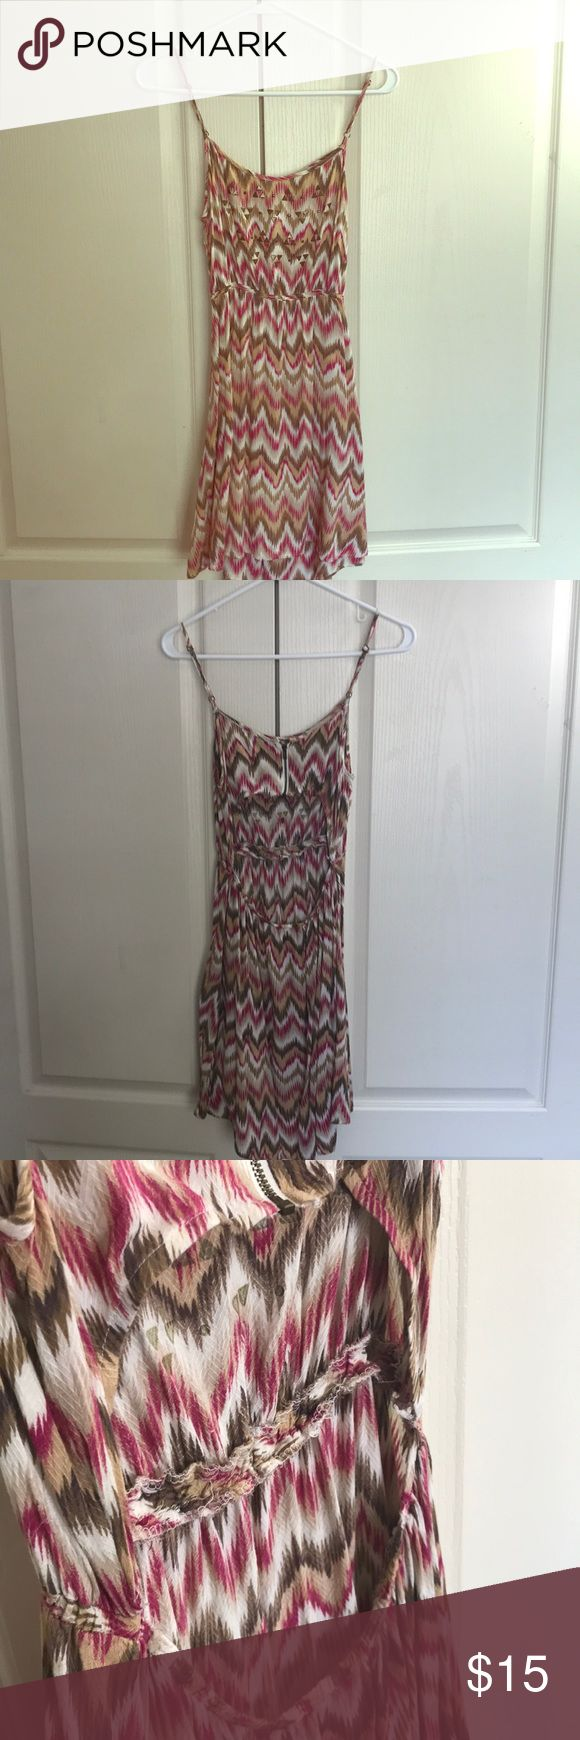 Urban Outfitters Summer Dress Adorable summer dress with Aztec pattern. Slightly worn. Cute gold detailing on chest. Thin straps. Shorter in front & longer in back. There is a cut-out on the lower back. I am 5'9 & the dress hits about mid thigh. Perfect for wearing during the day or an evening out. Dress is from Urban Outfitters. Lucca Couture Dresses Mini